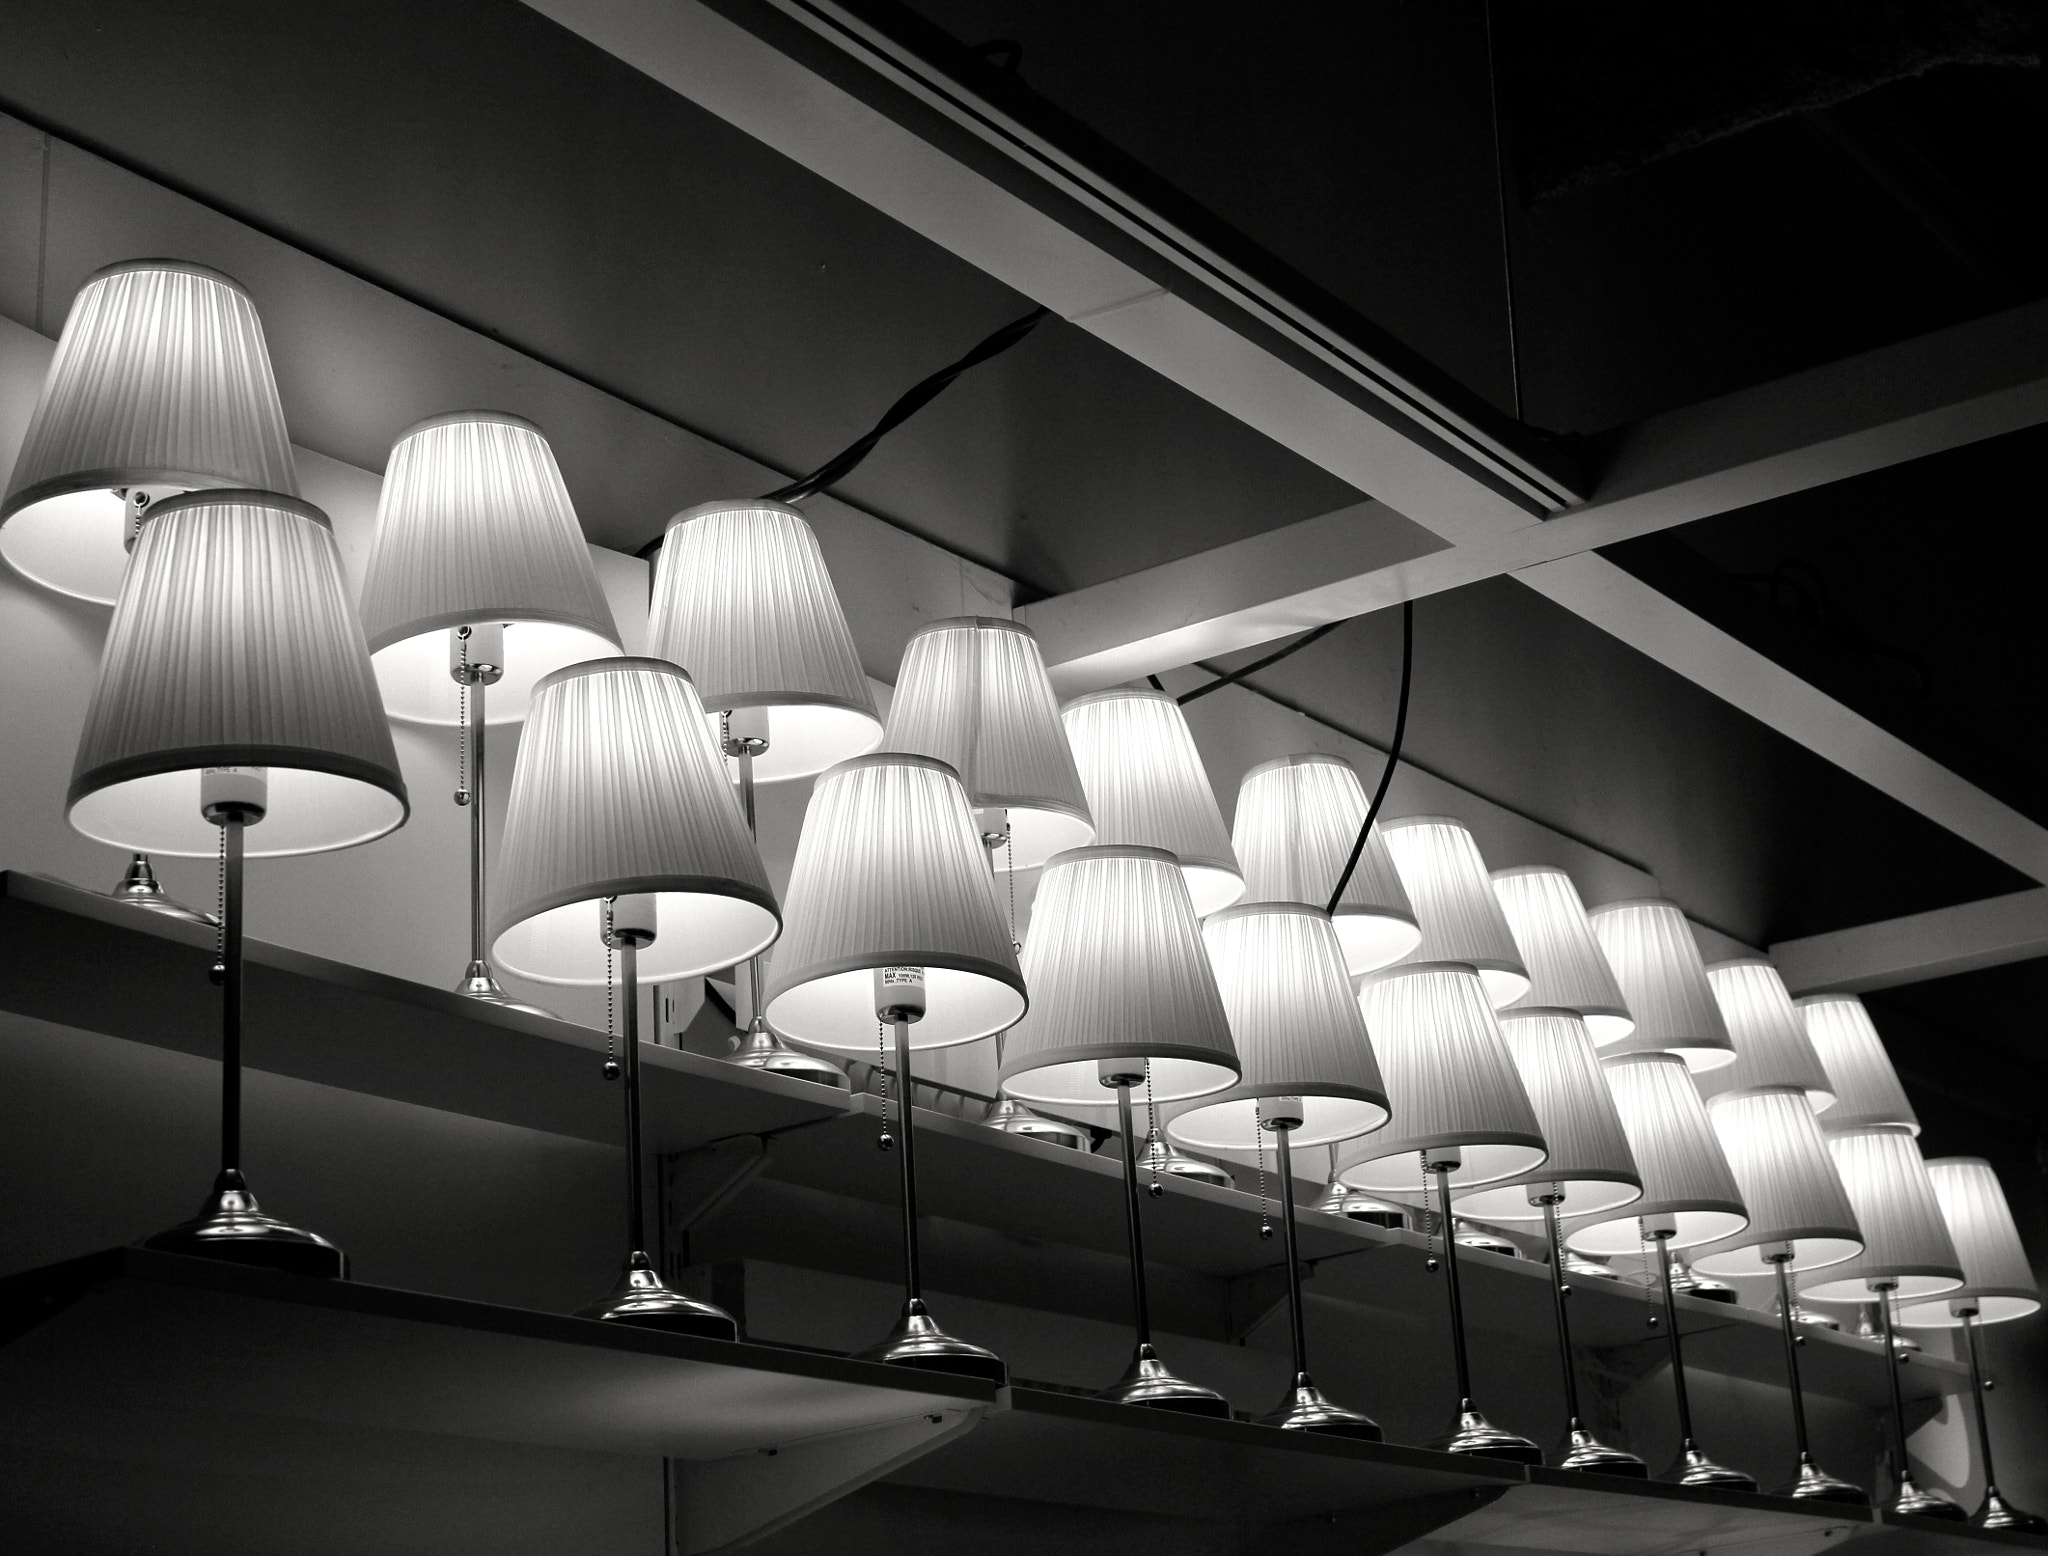 Photograph lamps by Ibrahim elhinaid on 500px